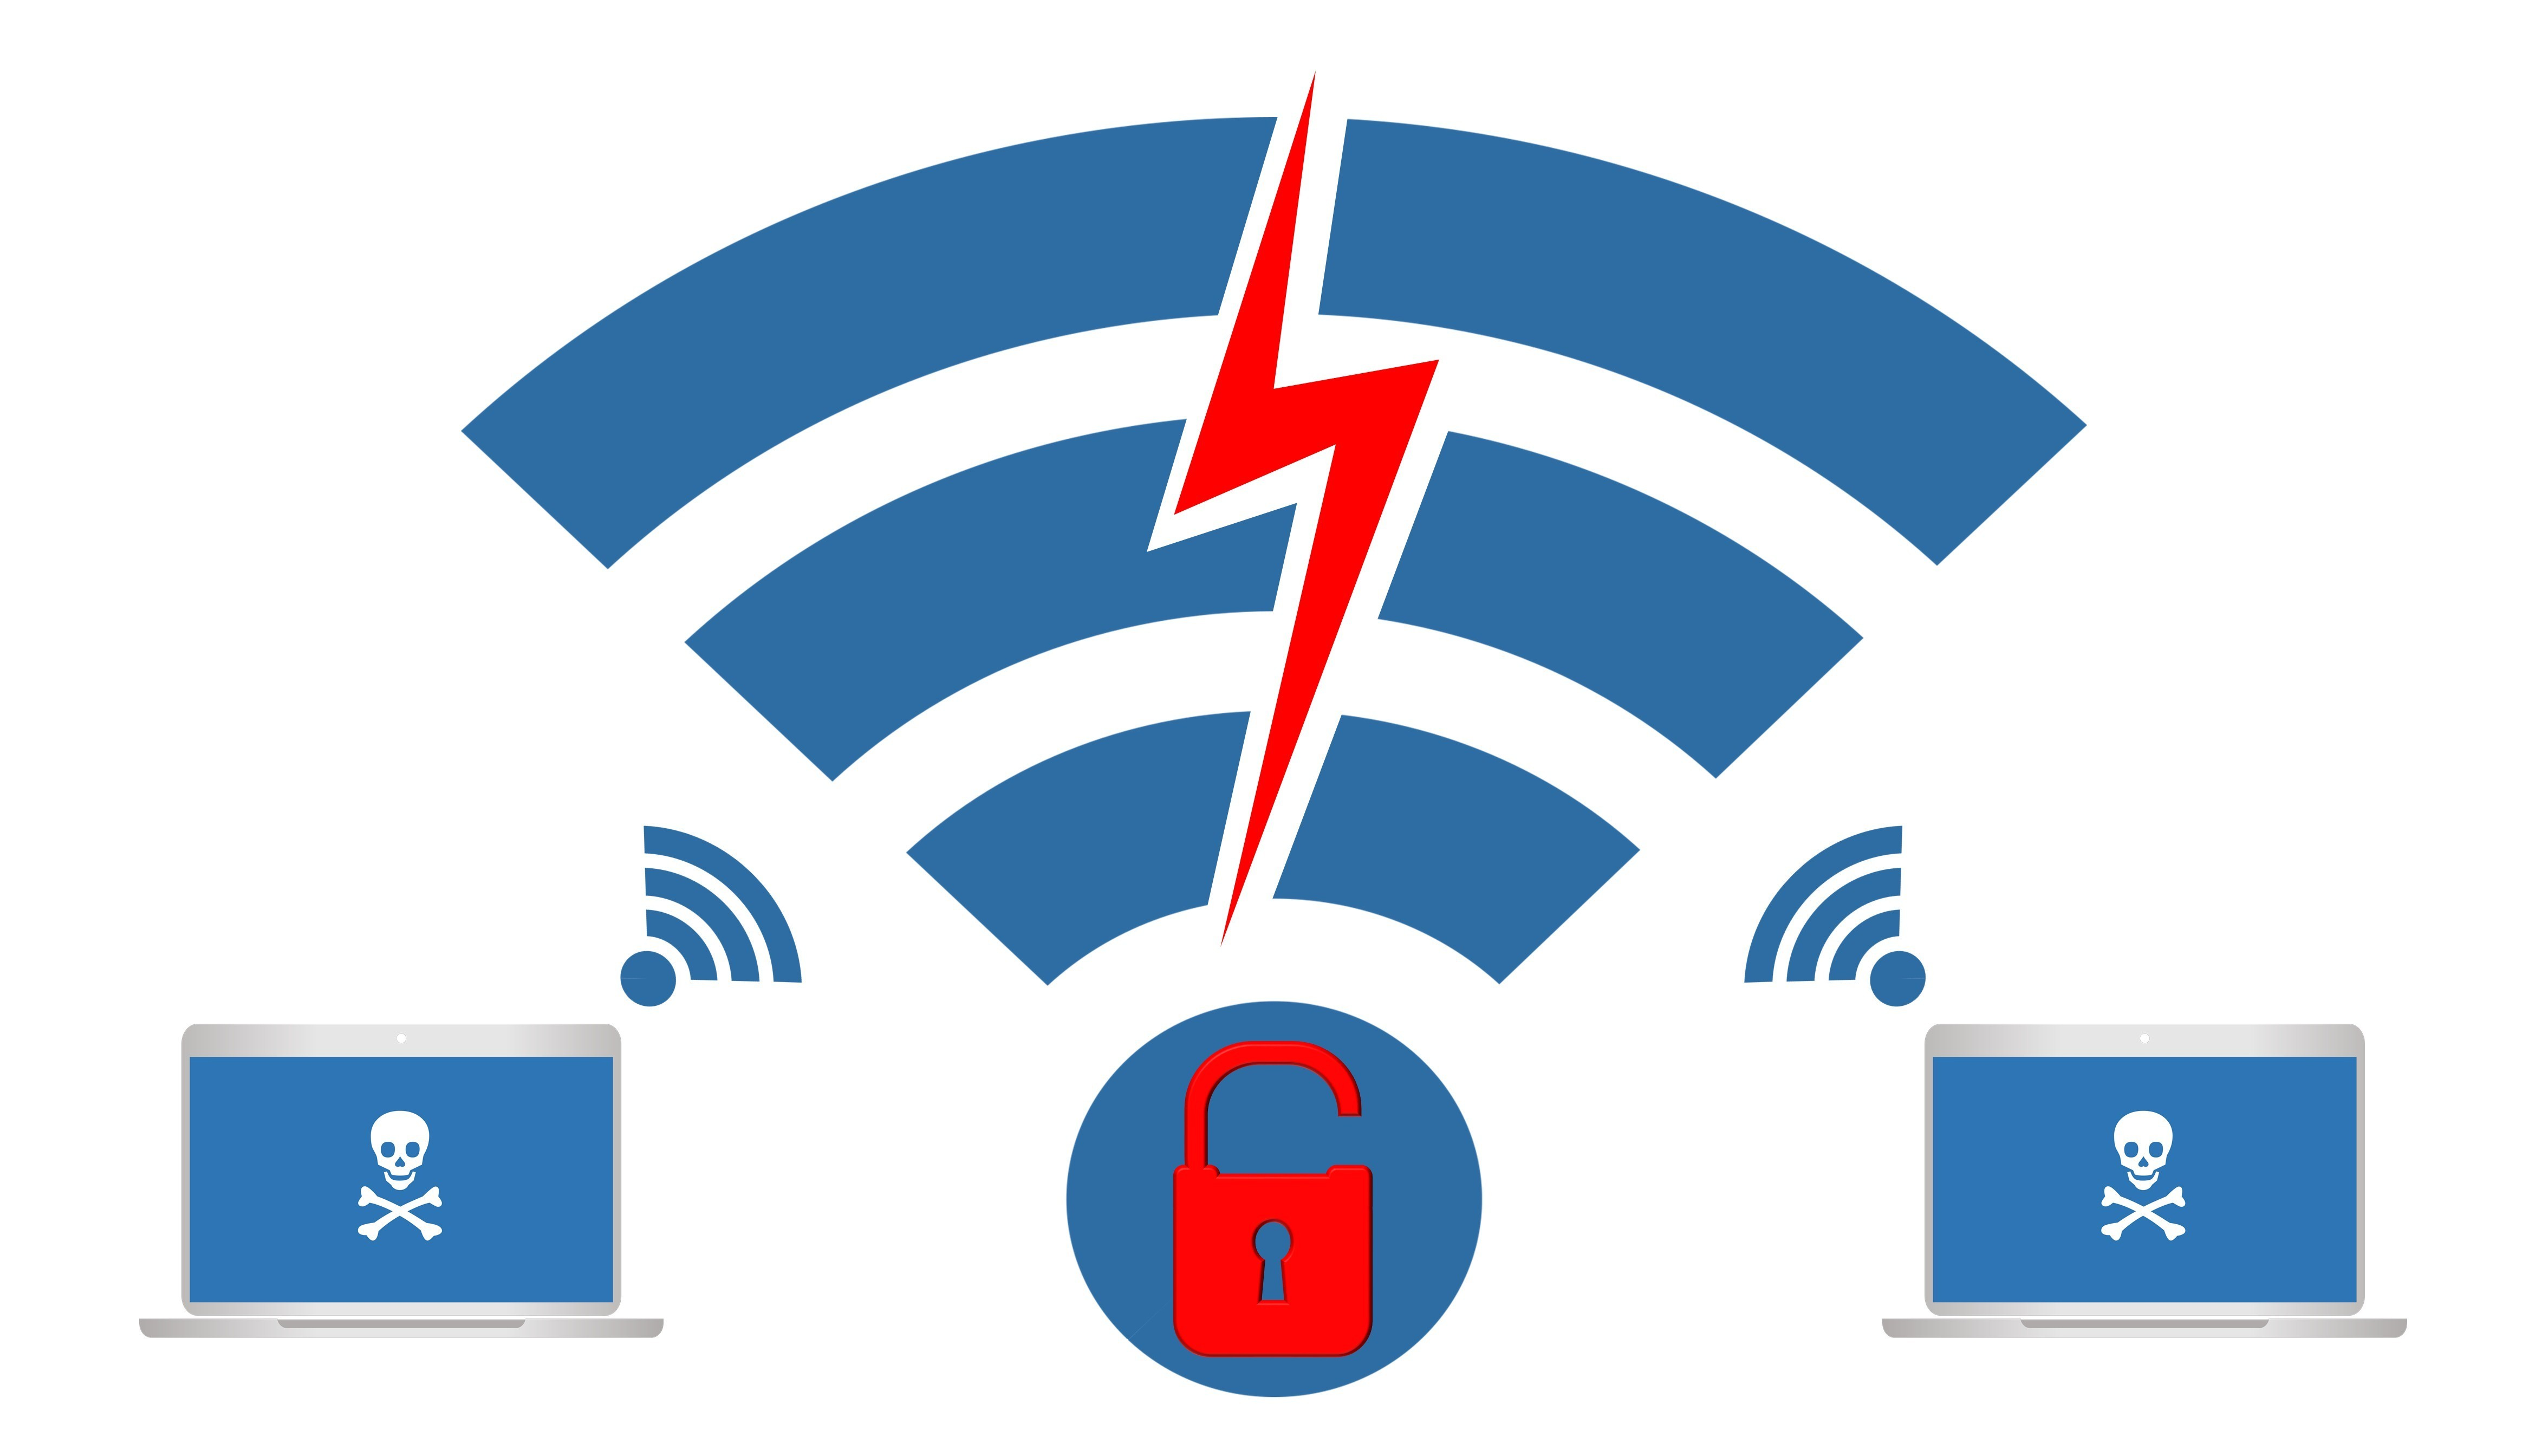 cyber security, WiFi vulnerability, IT security, WiFi security breach, security breaches